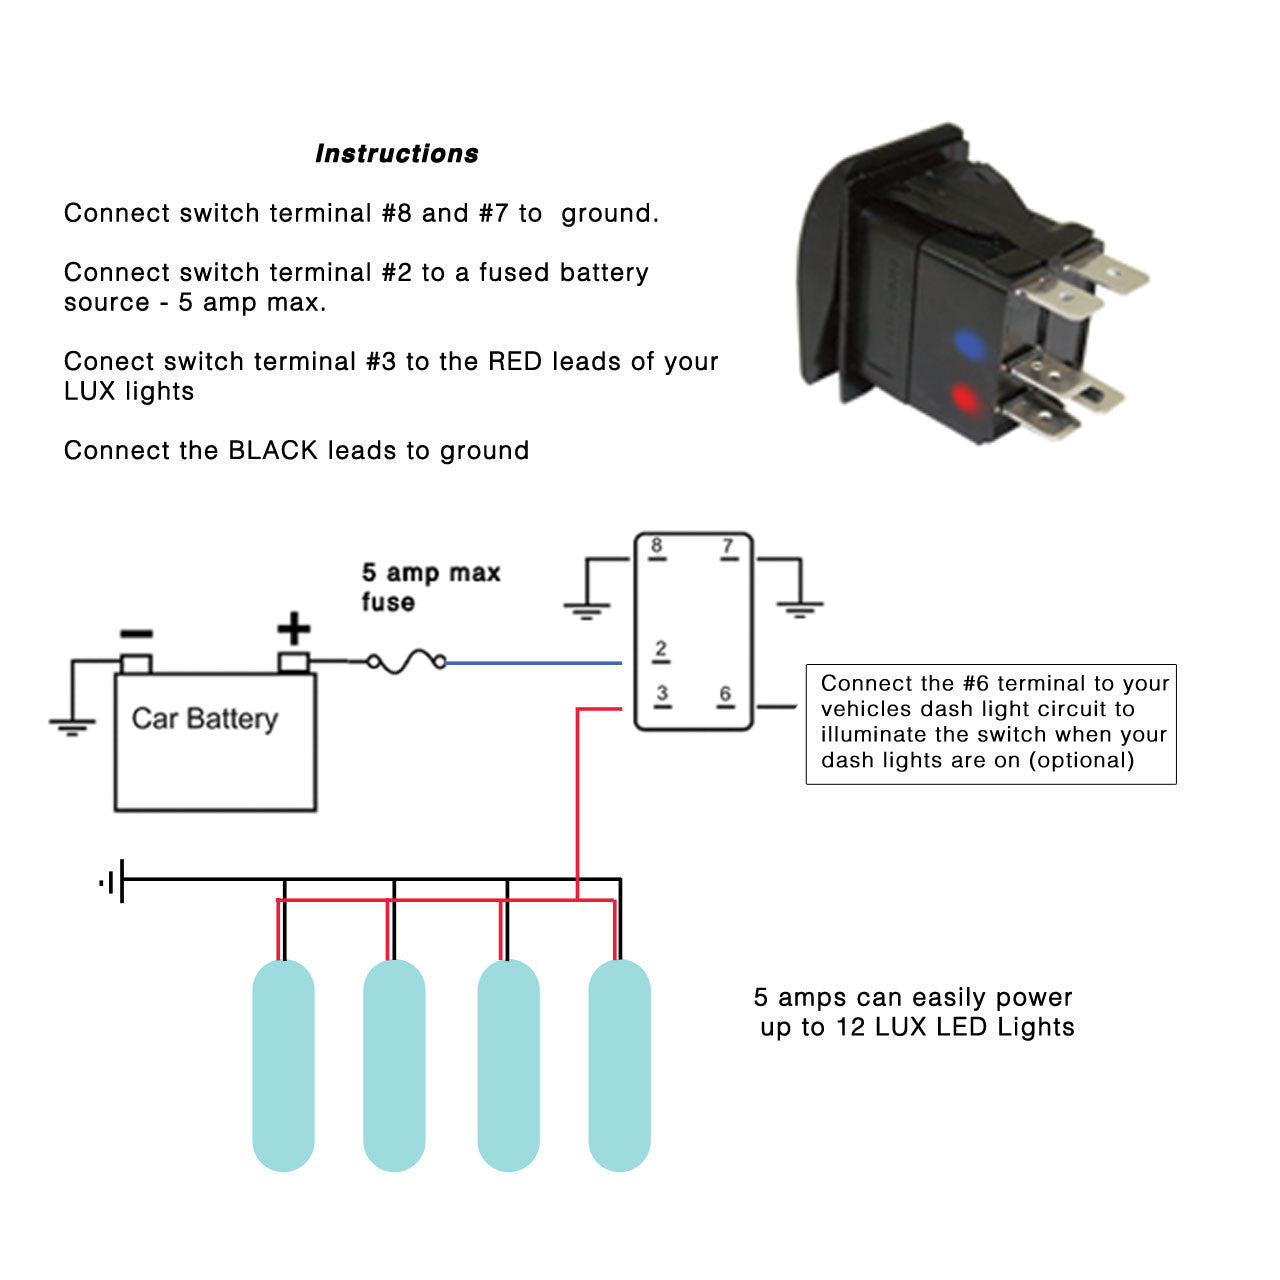 Rocker switch diagram online schematic diagram led rock light lux logo rocker switch lux lighting systems rh luxlightingsystems com rocker switch wiring diagram rocker switch wiring diagram asfbconference2016 Image collections